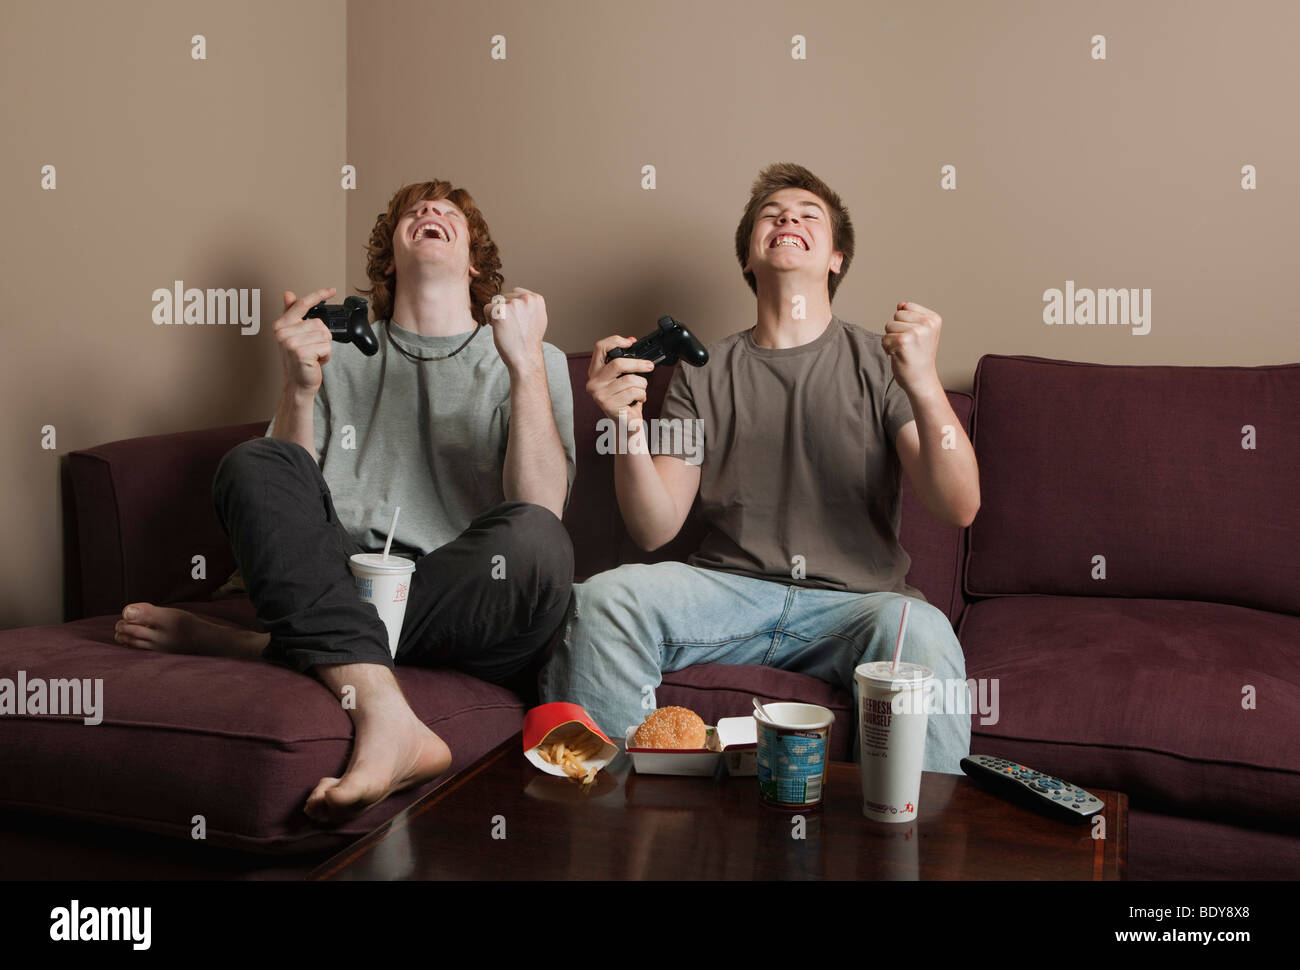 Boys playing video game Photo Stock